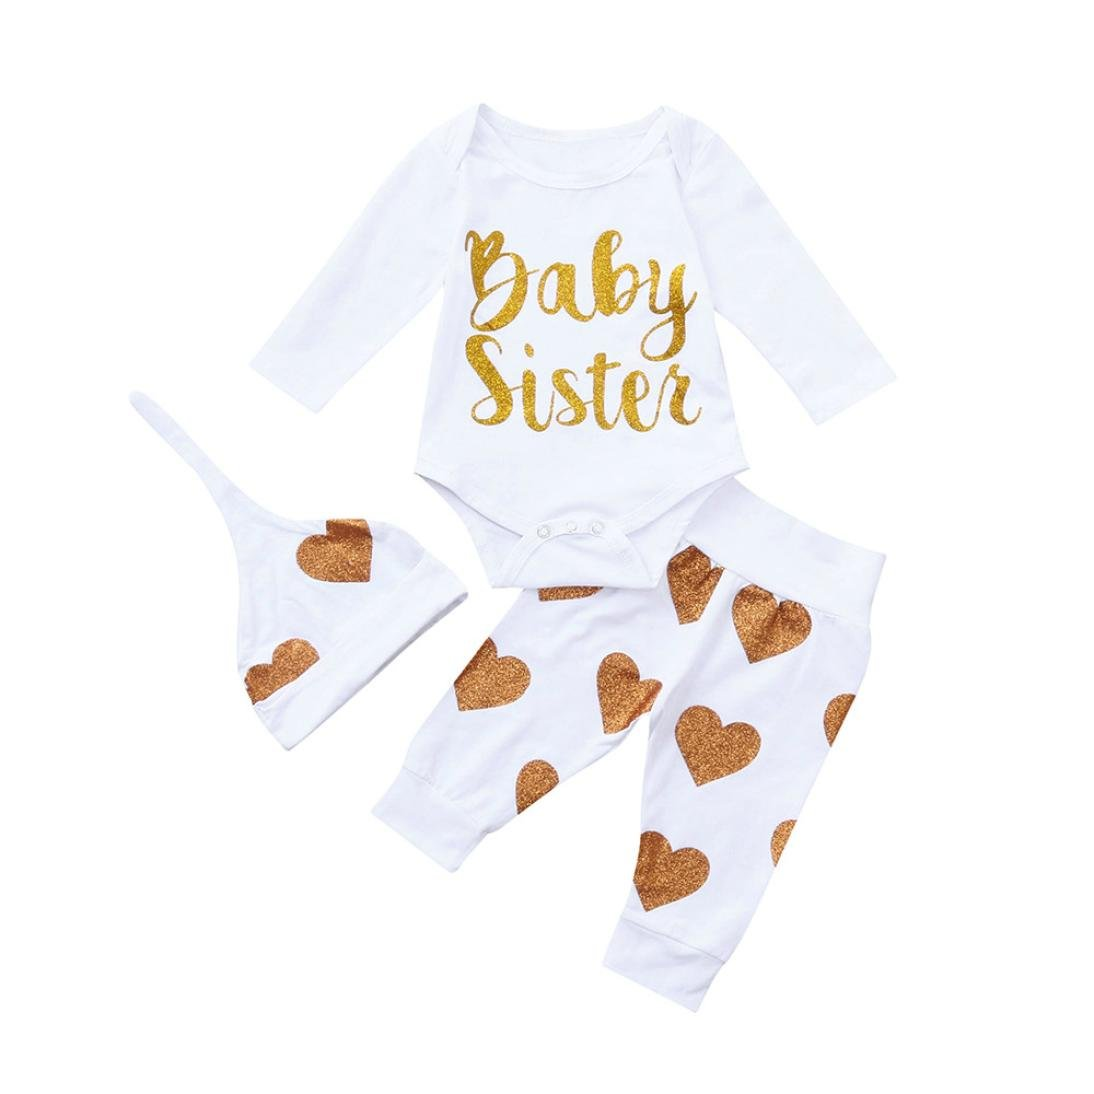 Newborn Letter Romper Sets,Jchen(TM) Newborn Baby Boys Girls Long Sleeve Letter Baby Sister Romper Tops+Heart Print Pant + Hat Autumn Outfits for 0-24 Months (Age: 18-24 Months)